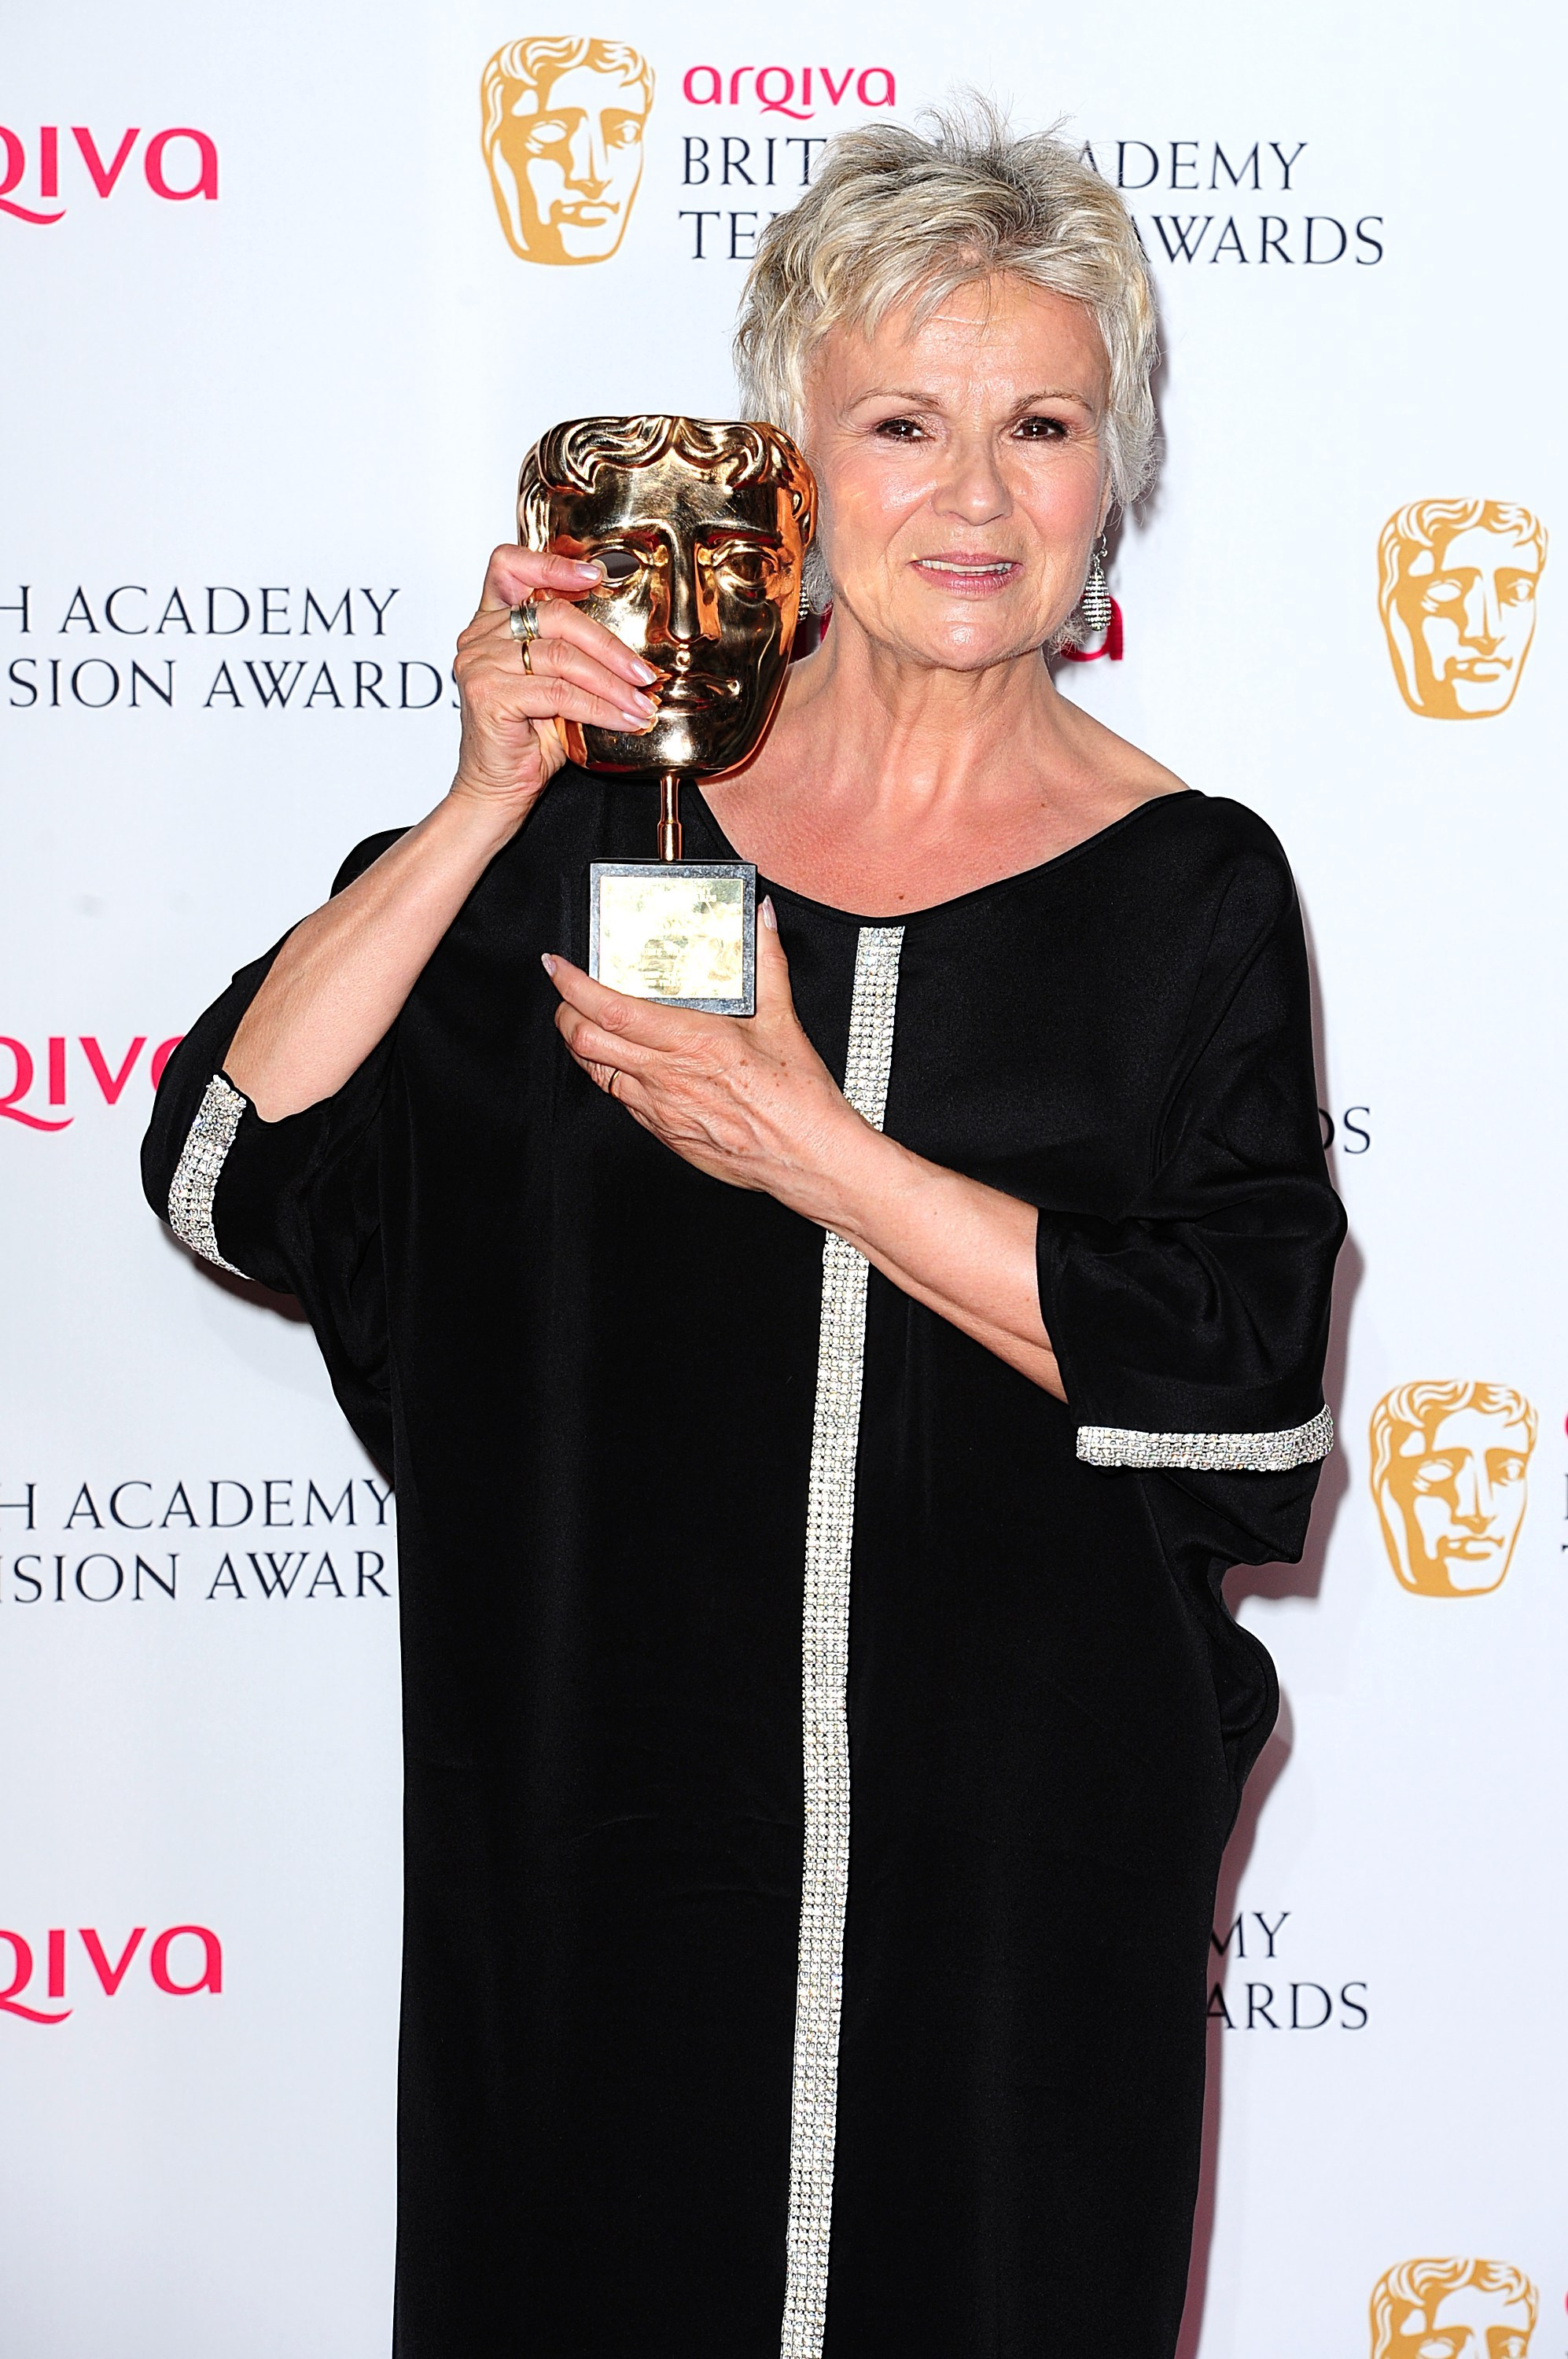 Julie Walters wins at the Bafta awards